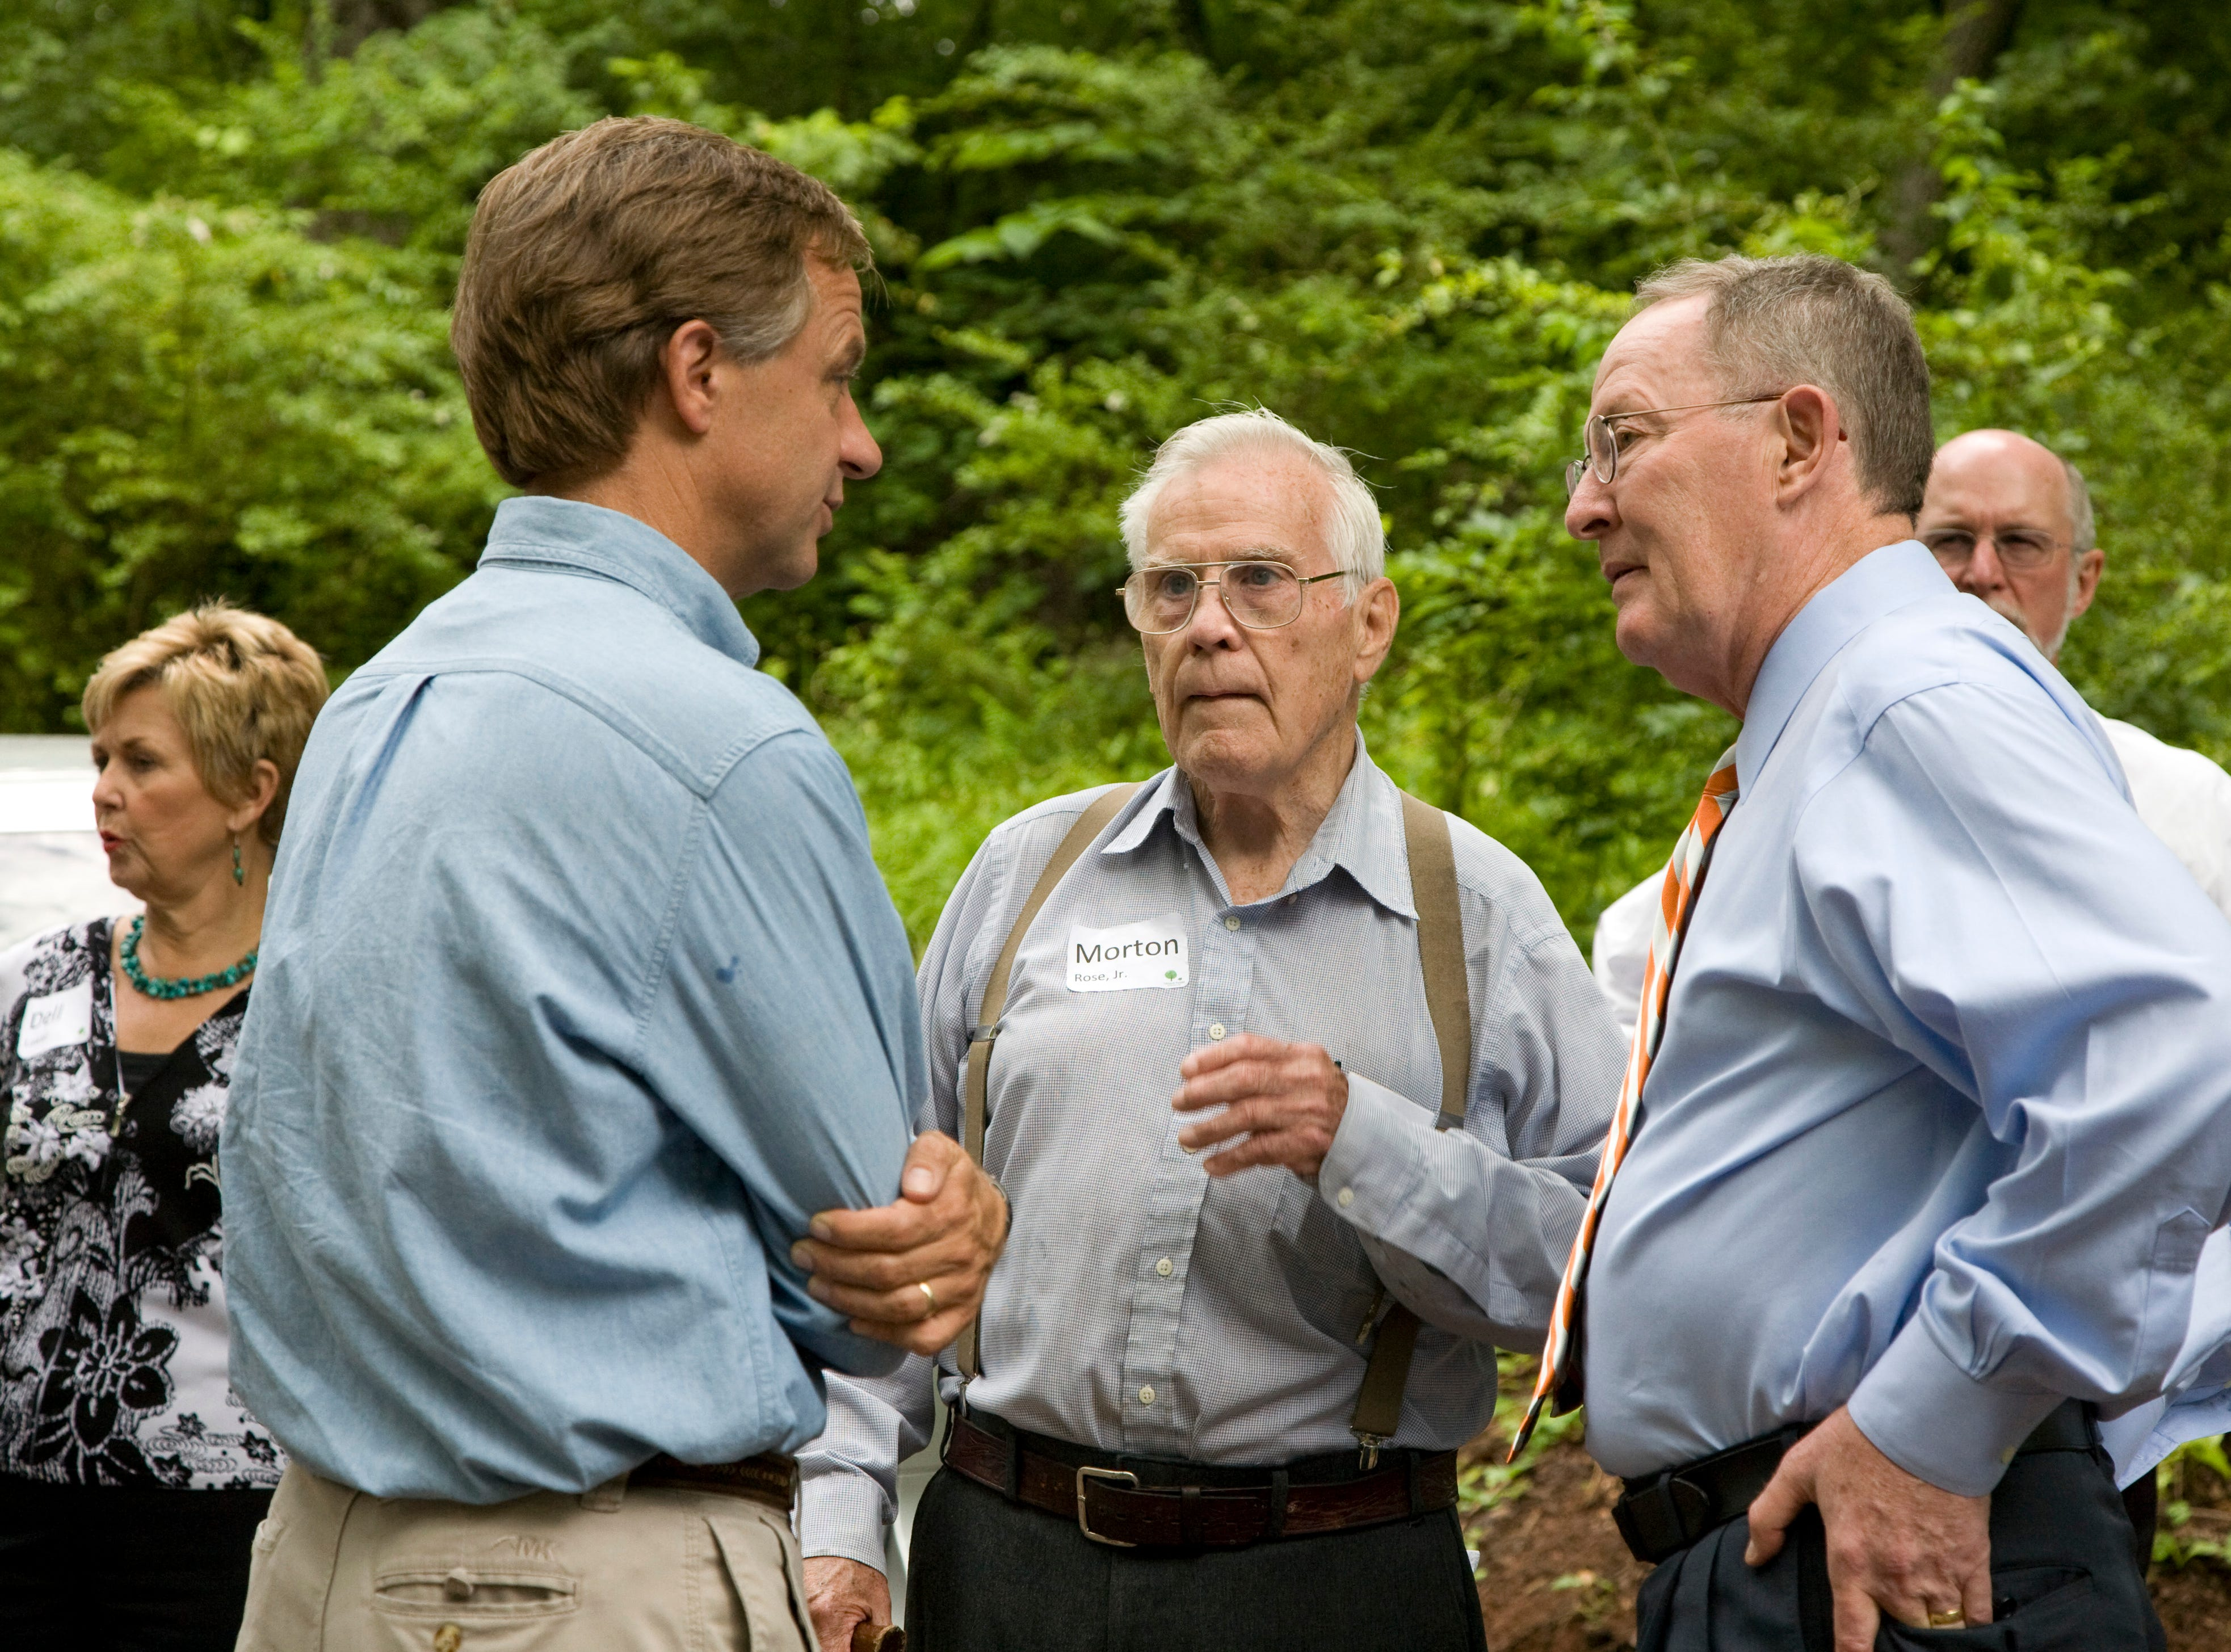 Knoxville Mayor Bill Haslam, left, and Sen. Lamar Alexander, right, speak with Morton Rose, Jr., center, at the River Bluff Wildlife Area Wednesday, May 27, 2009.  Rose grew up on the property and has family ties there dating back to 1915.